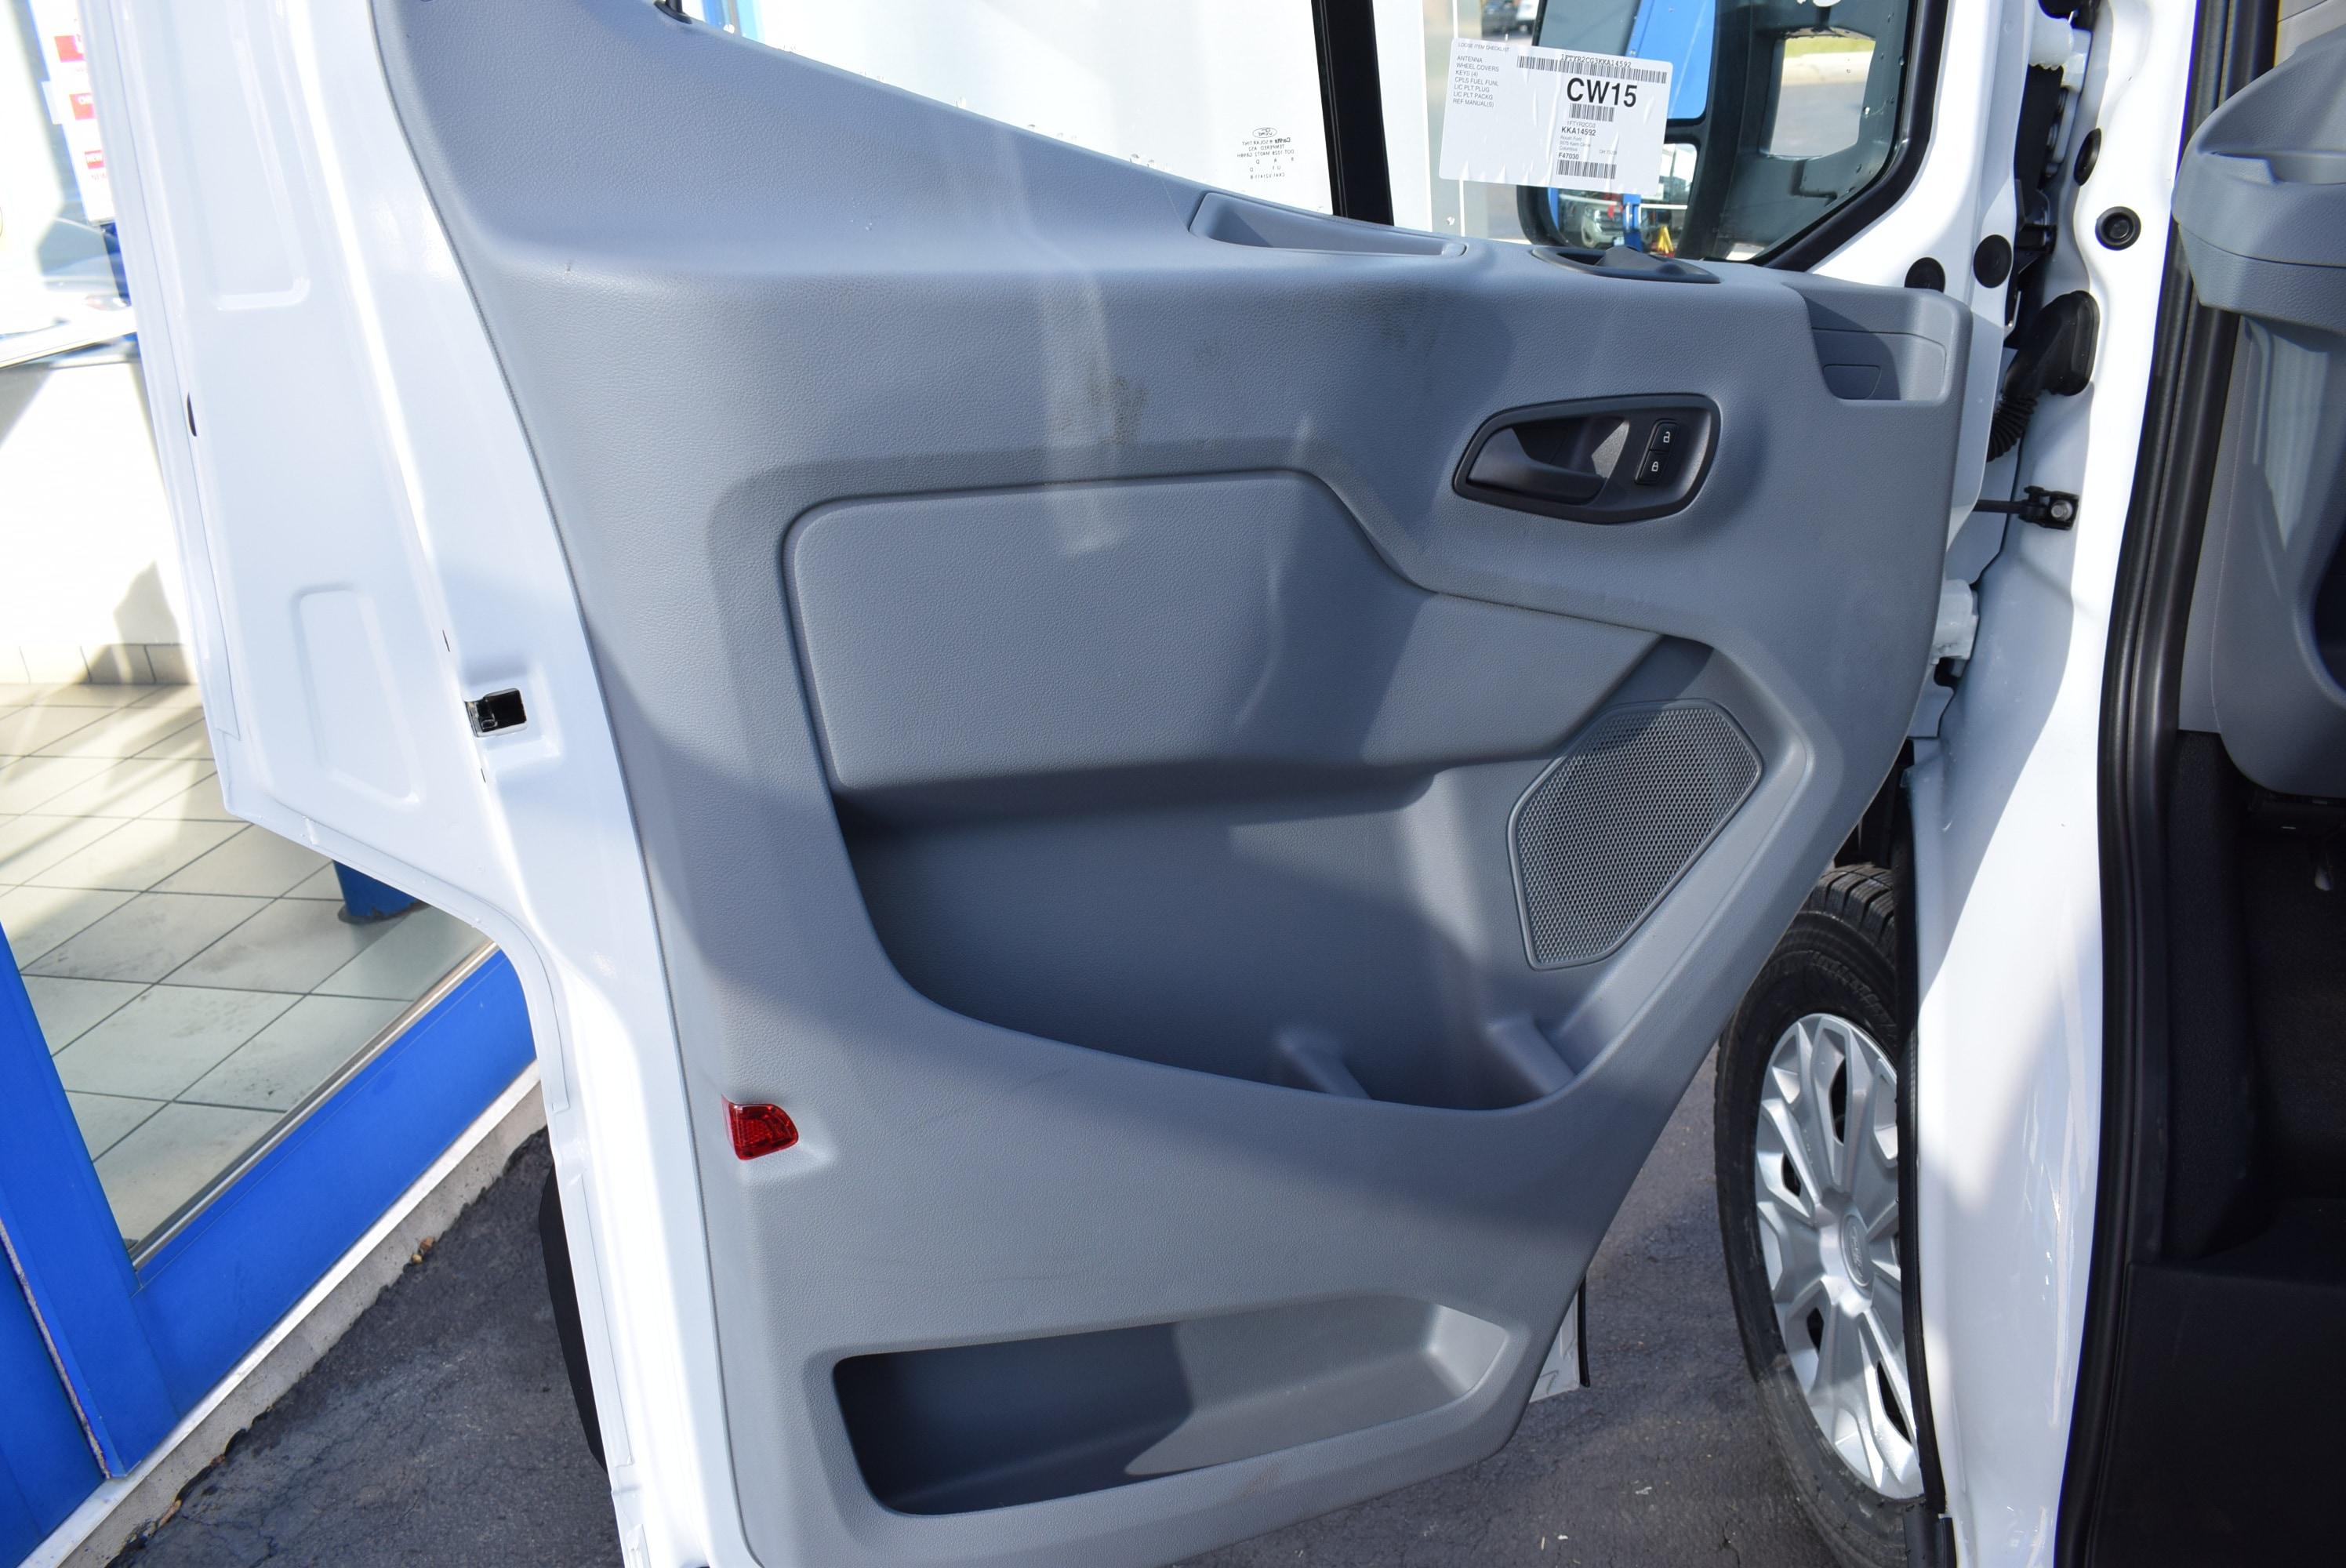 2019 Transit 250 Med Roof 4x2,  Empty Cargo Van #T19043 - photo 15